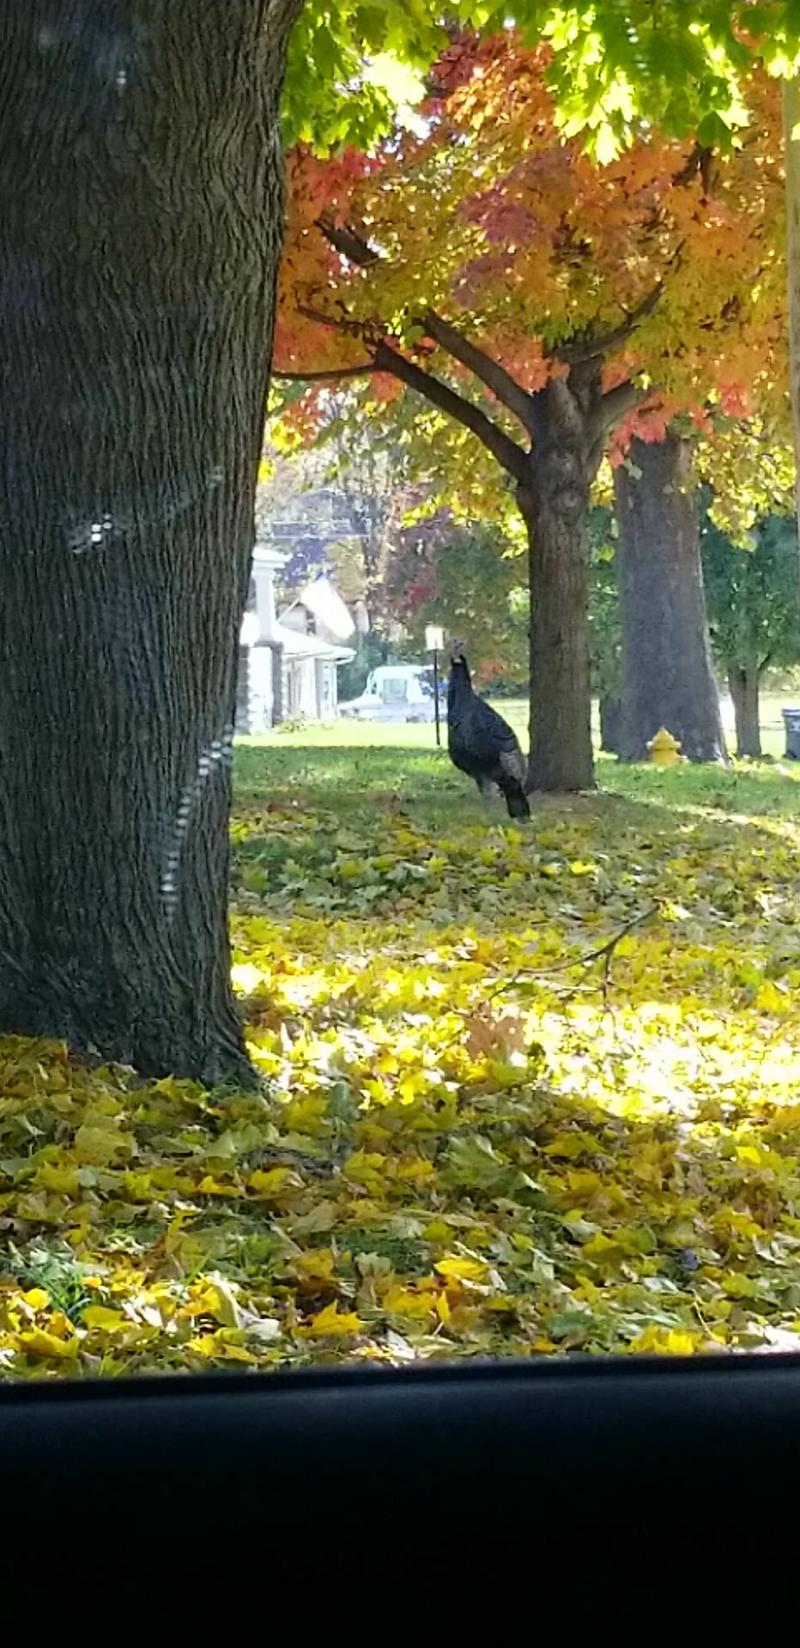 A turkey enjoys the fall leaves Friday afternoon on Colton Avenue in Bloomington.